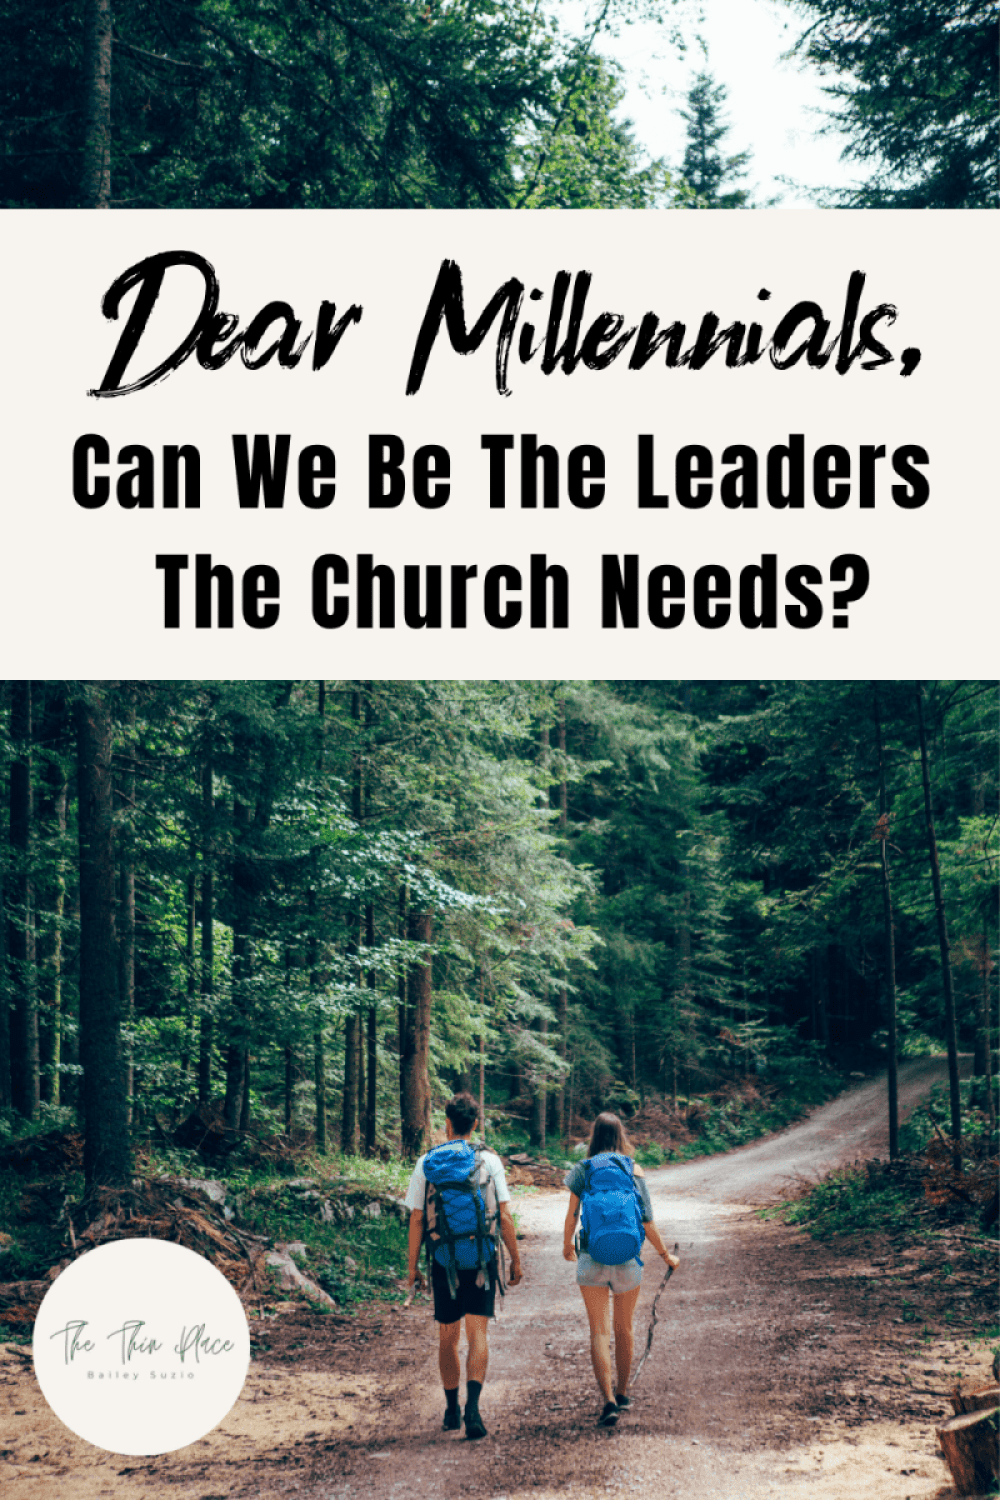 Dear Millennials, can we answer the call to holiness and be the generation of leaders the Church needs? #catholic #churchleaders #leadership #christian #christianleaders #christianity #catholicchurch #catholicleaders